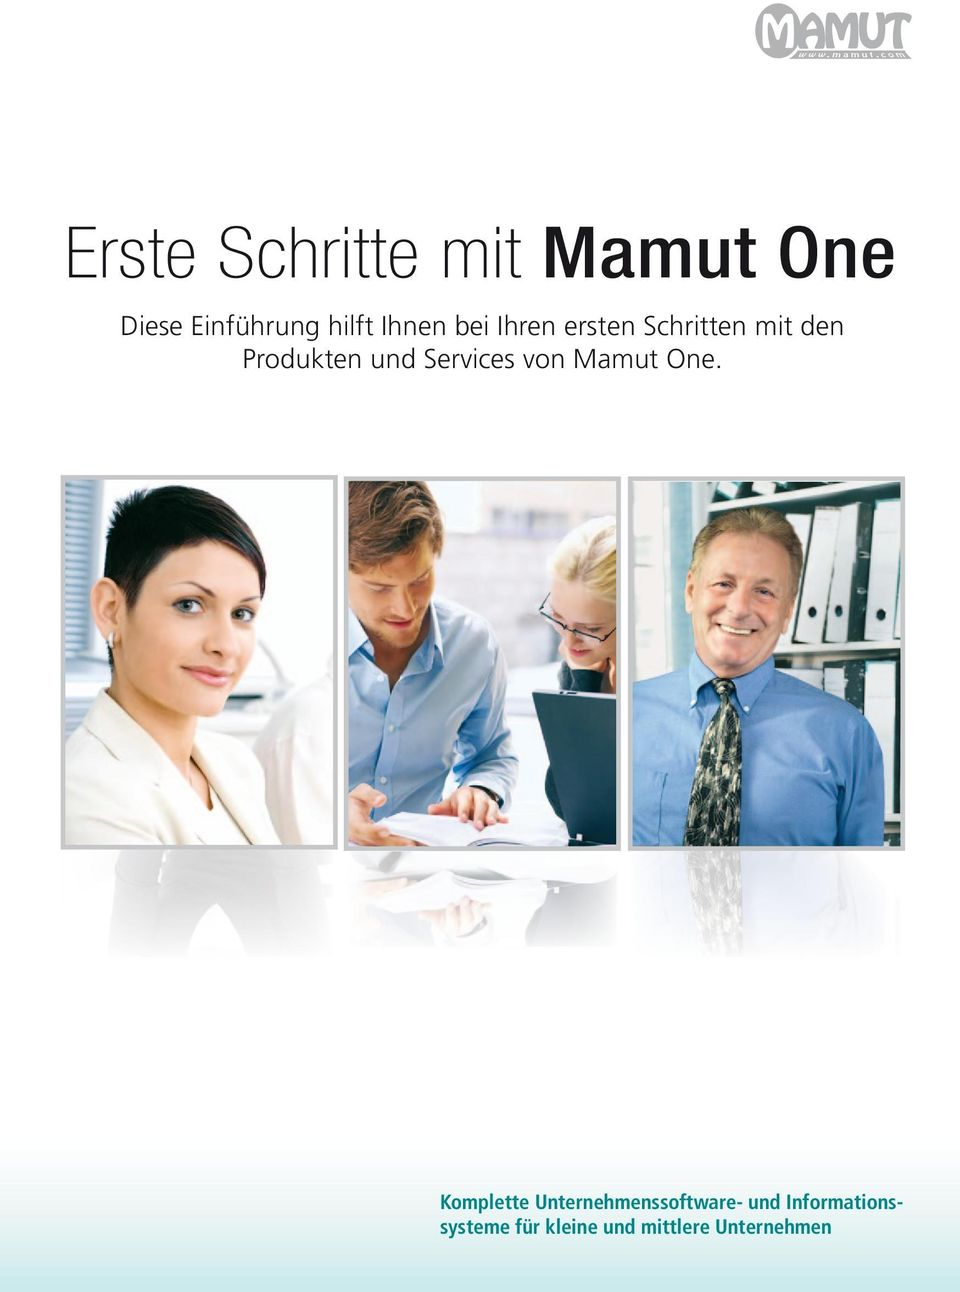 Services von Mamut One.